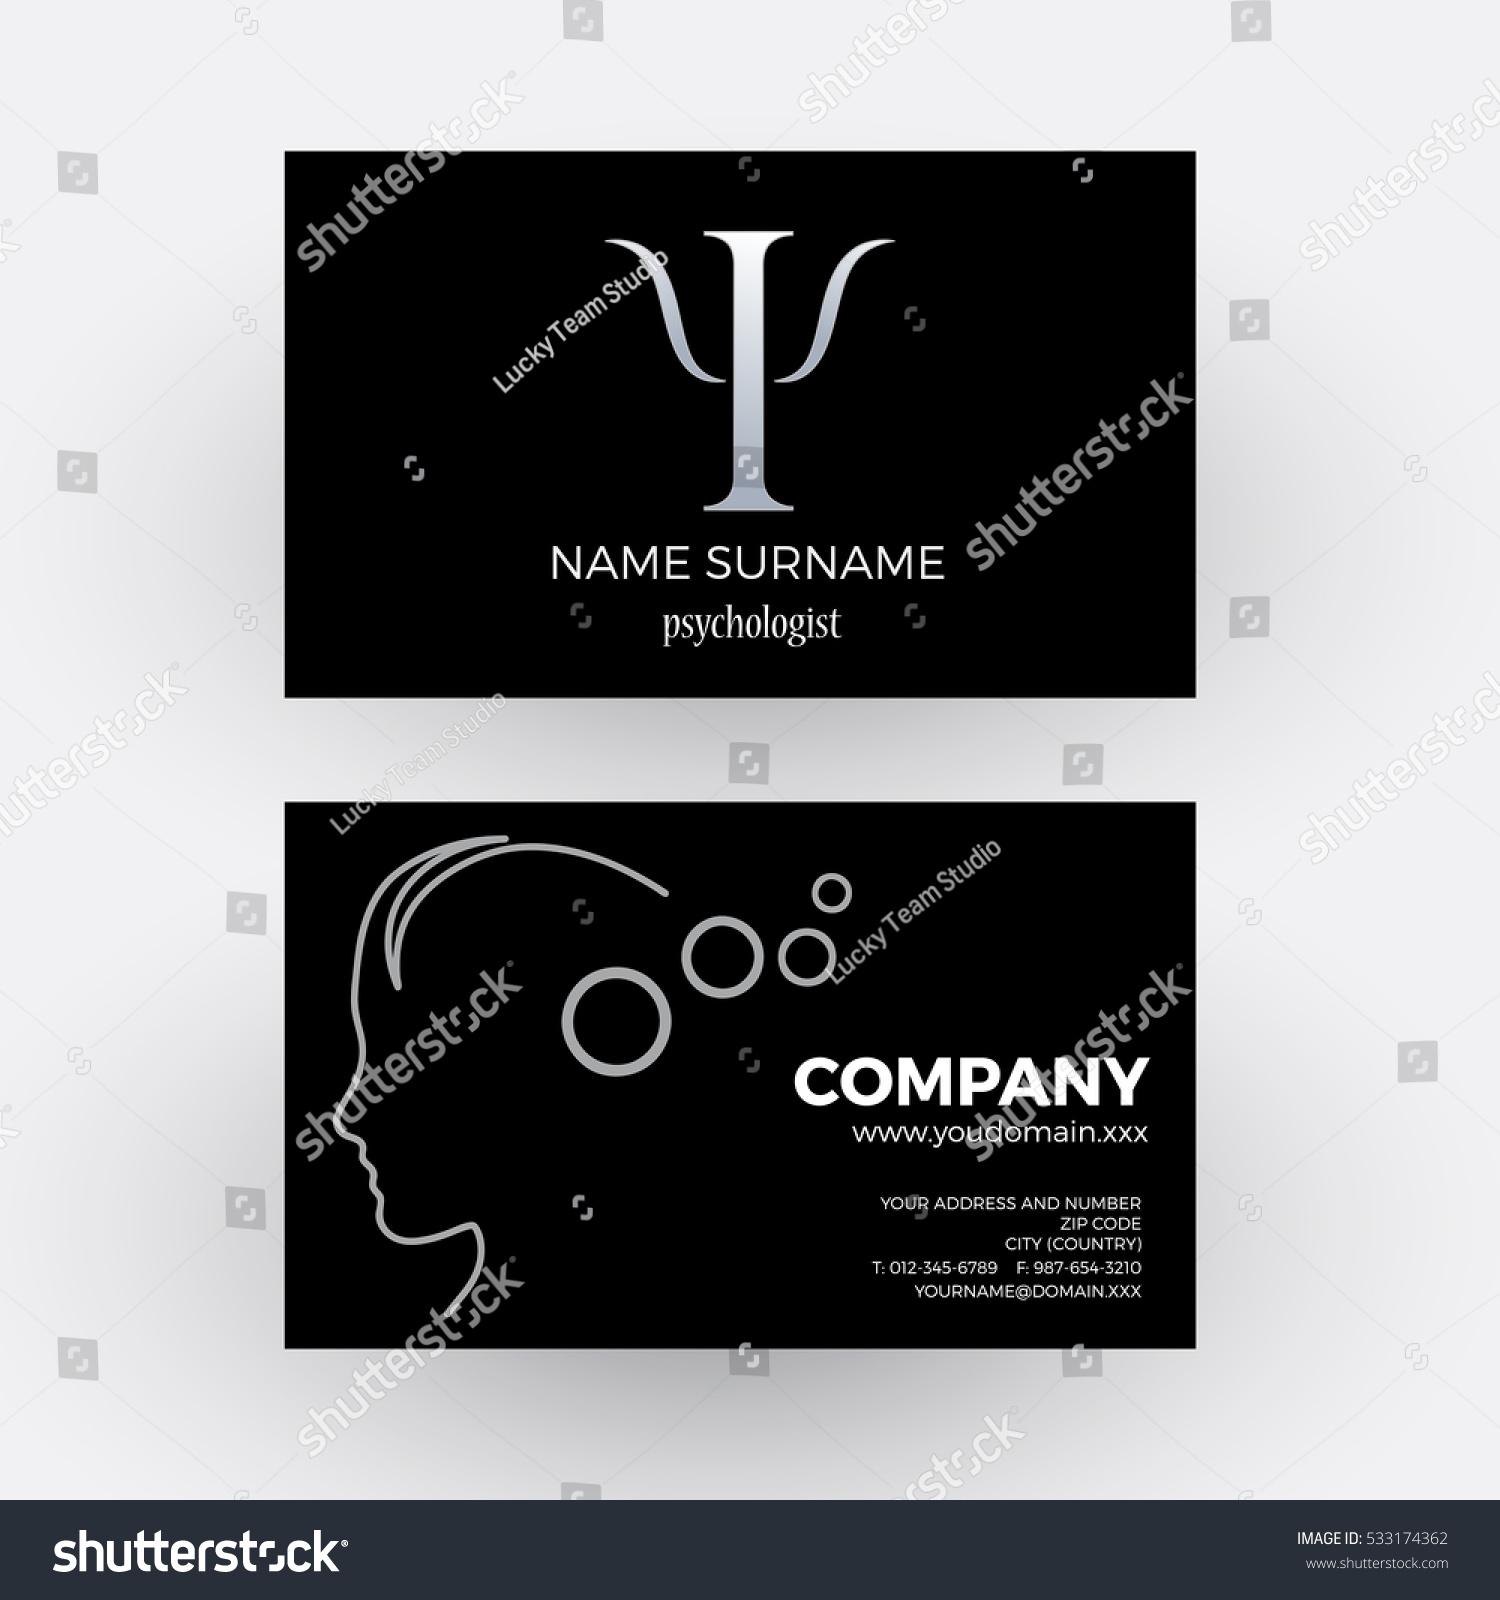 Cool Business Cards Psychologist Images - Business Card Ideas ...